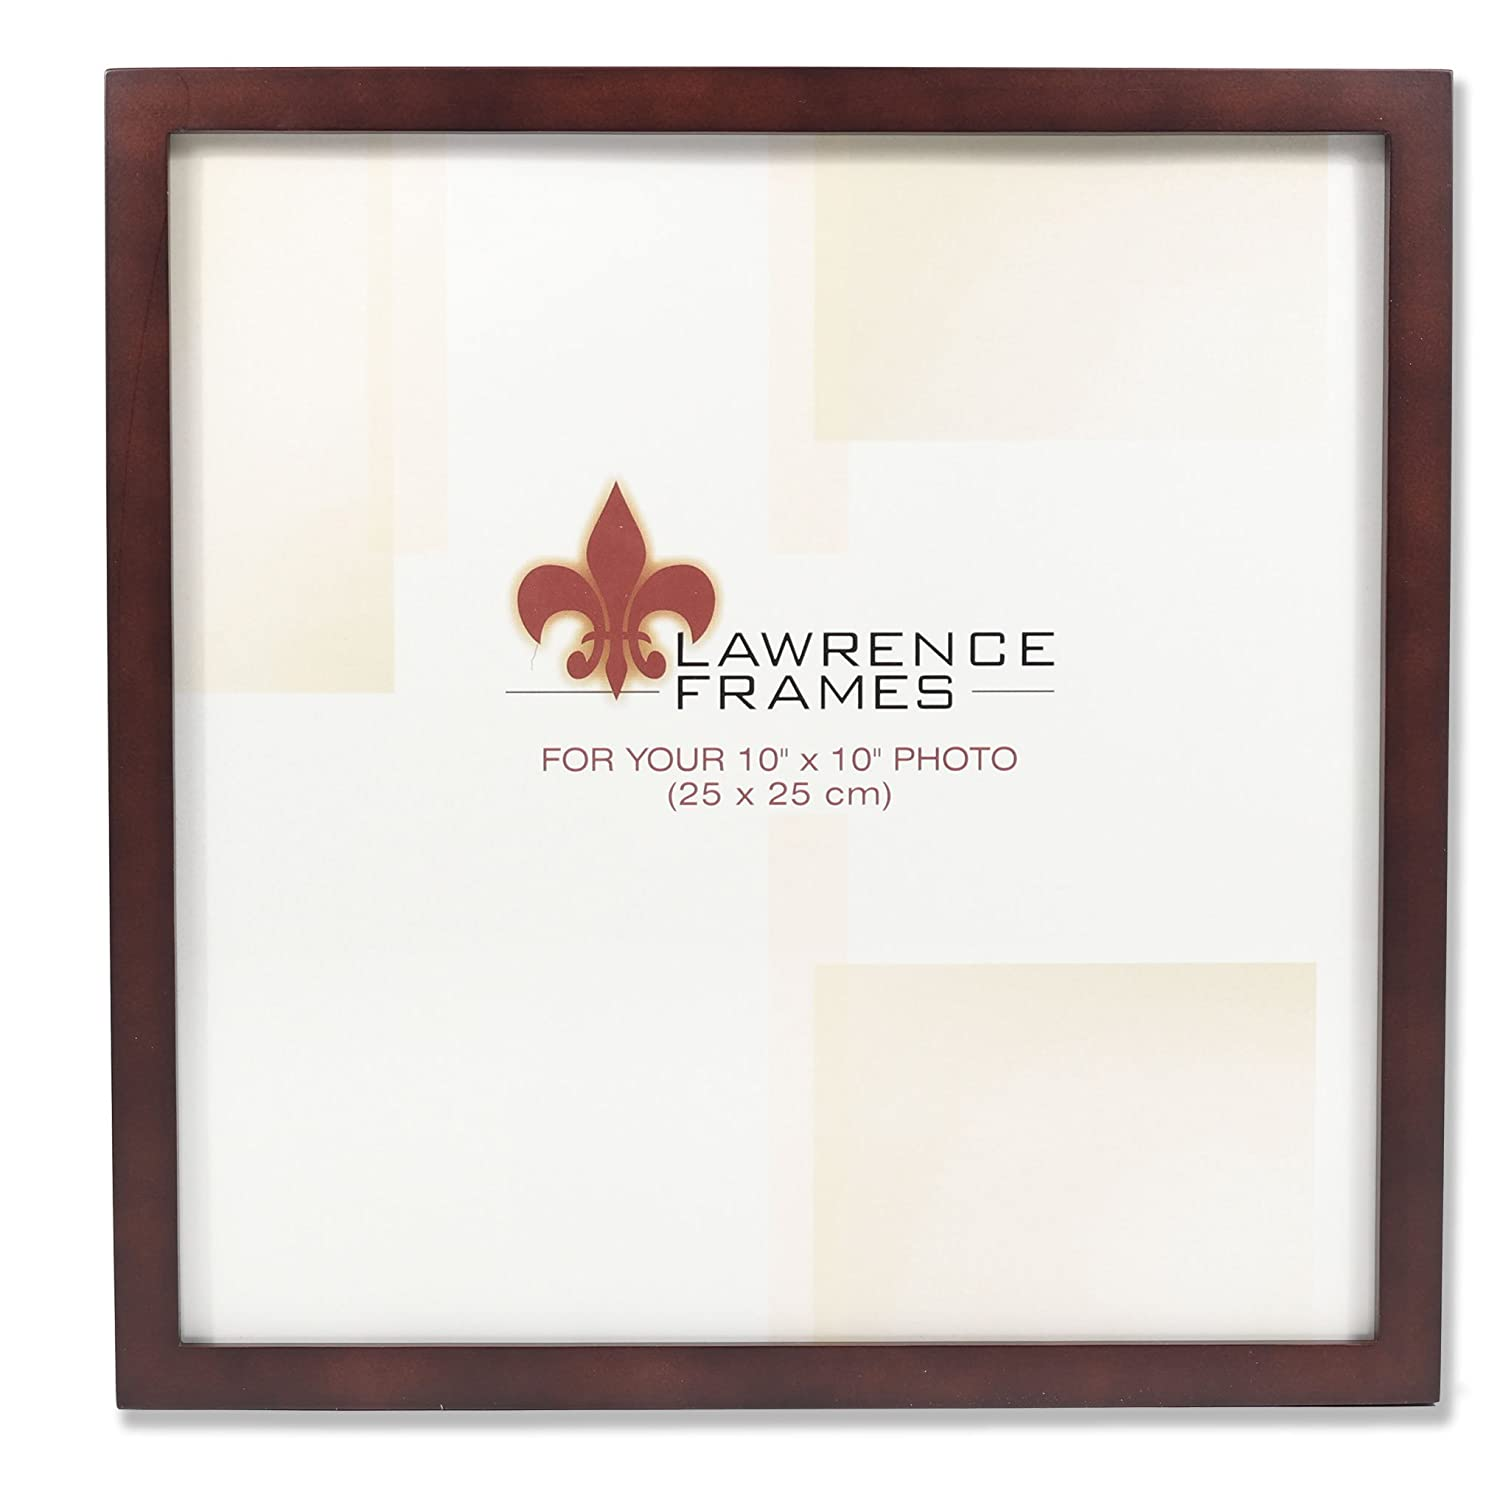 Amazoncom Lawrence Frames 755910 Espresso Wood Picture Frame 10